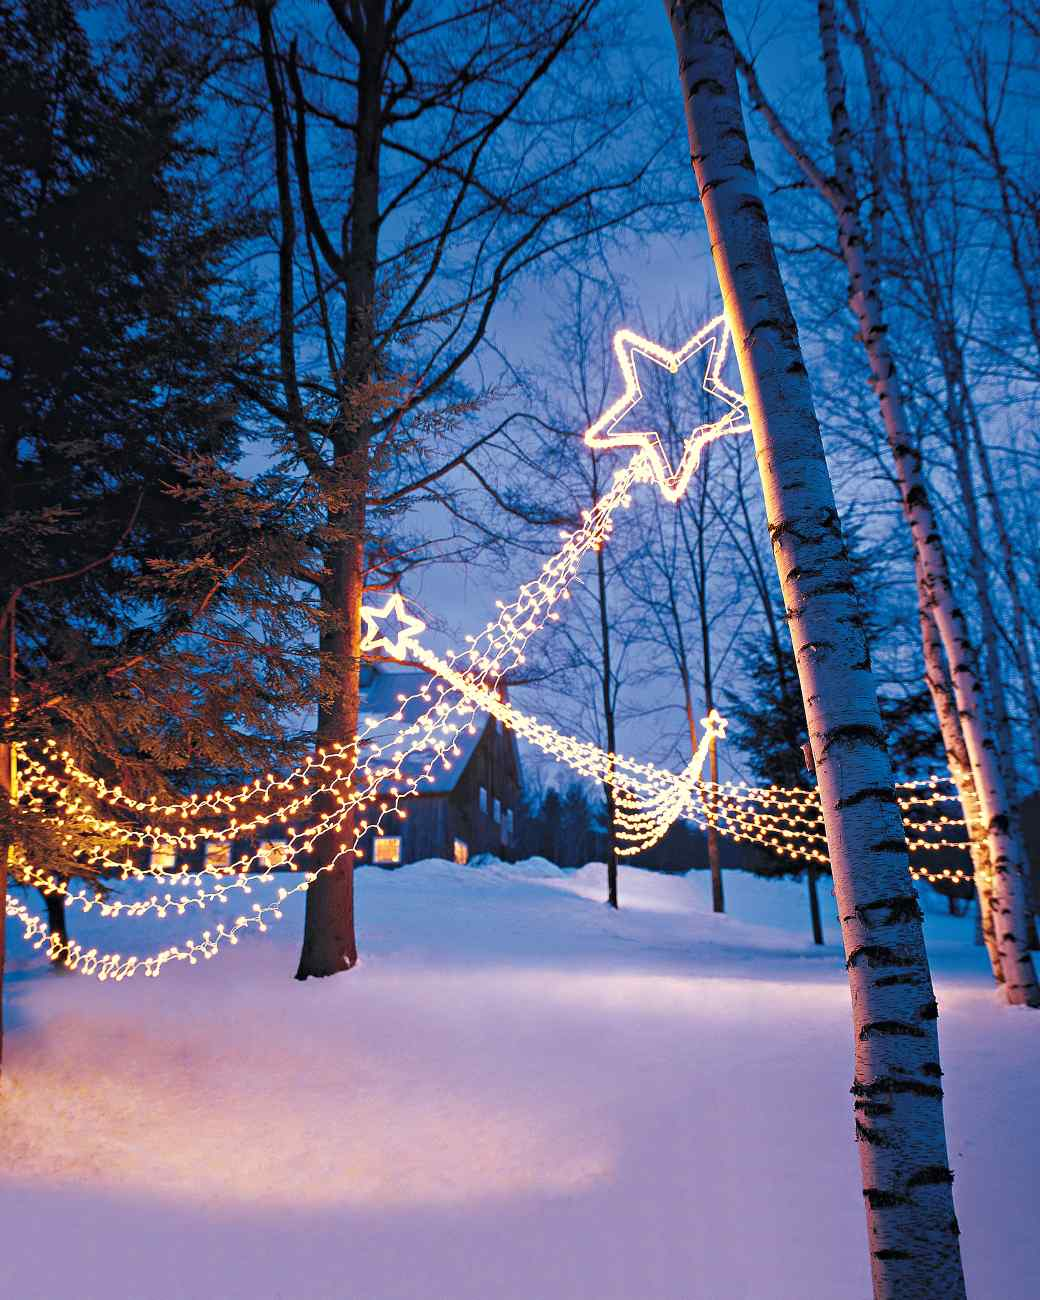 Outdoor Christmas Lighting Ideas: 15 Beautiful Christmas Outdoor Lighting DIY Ideas